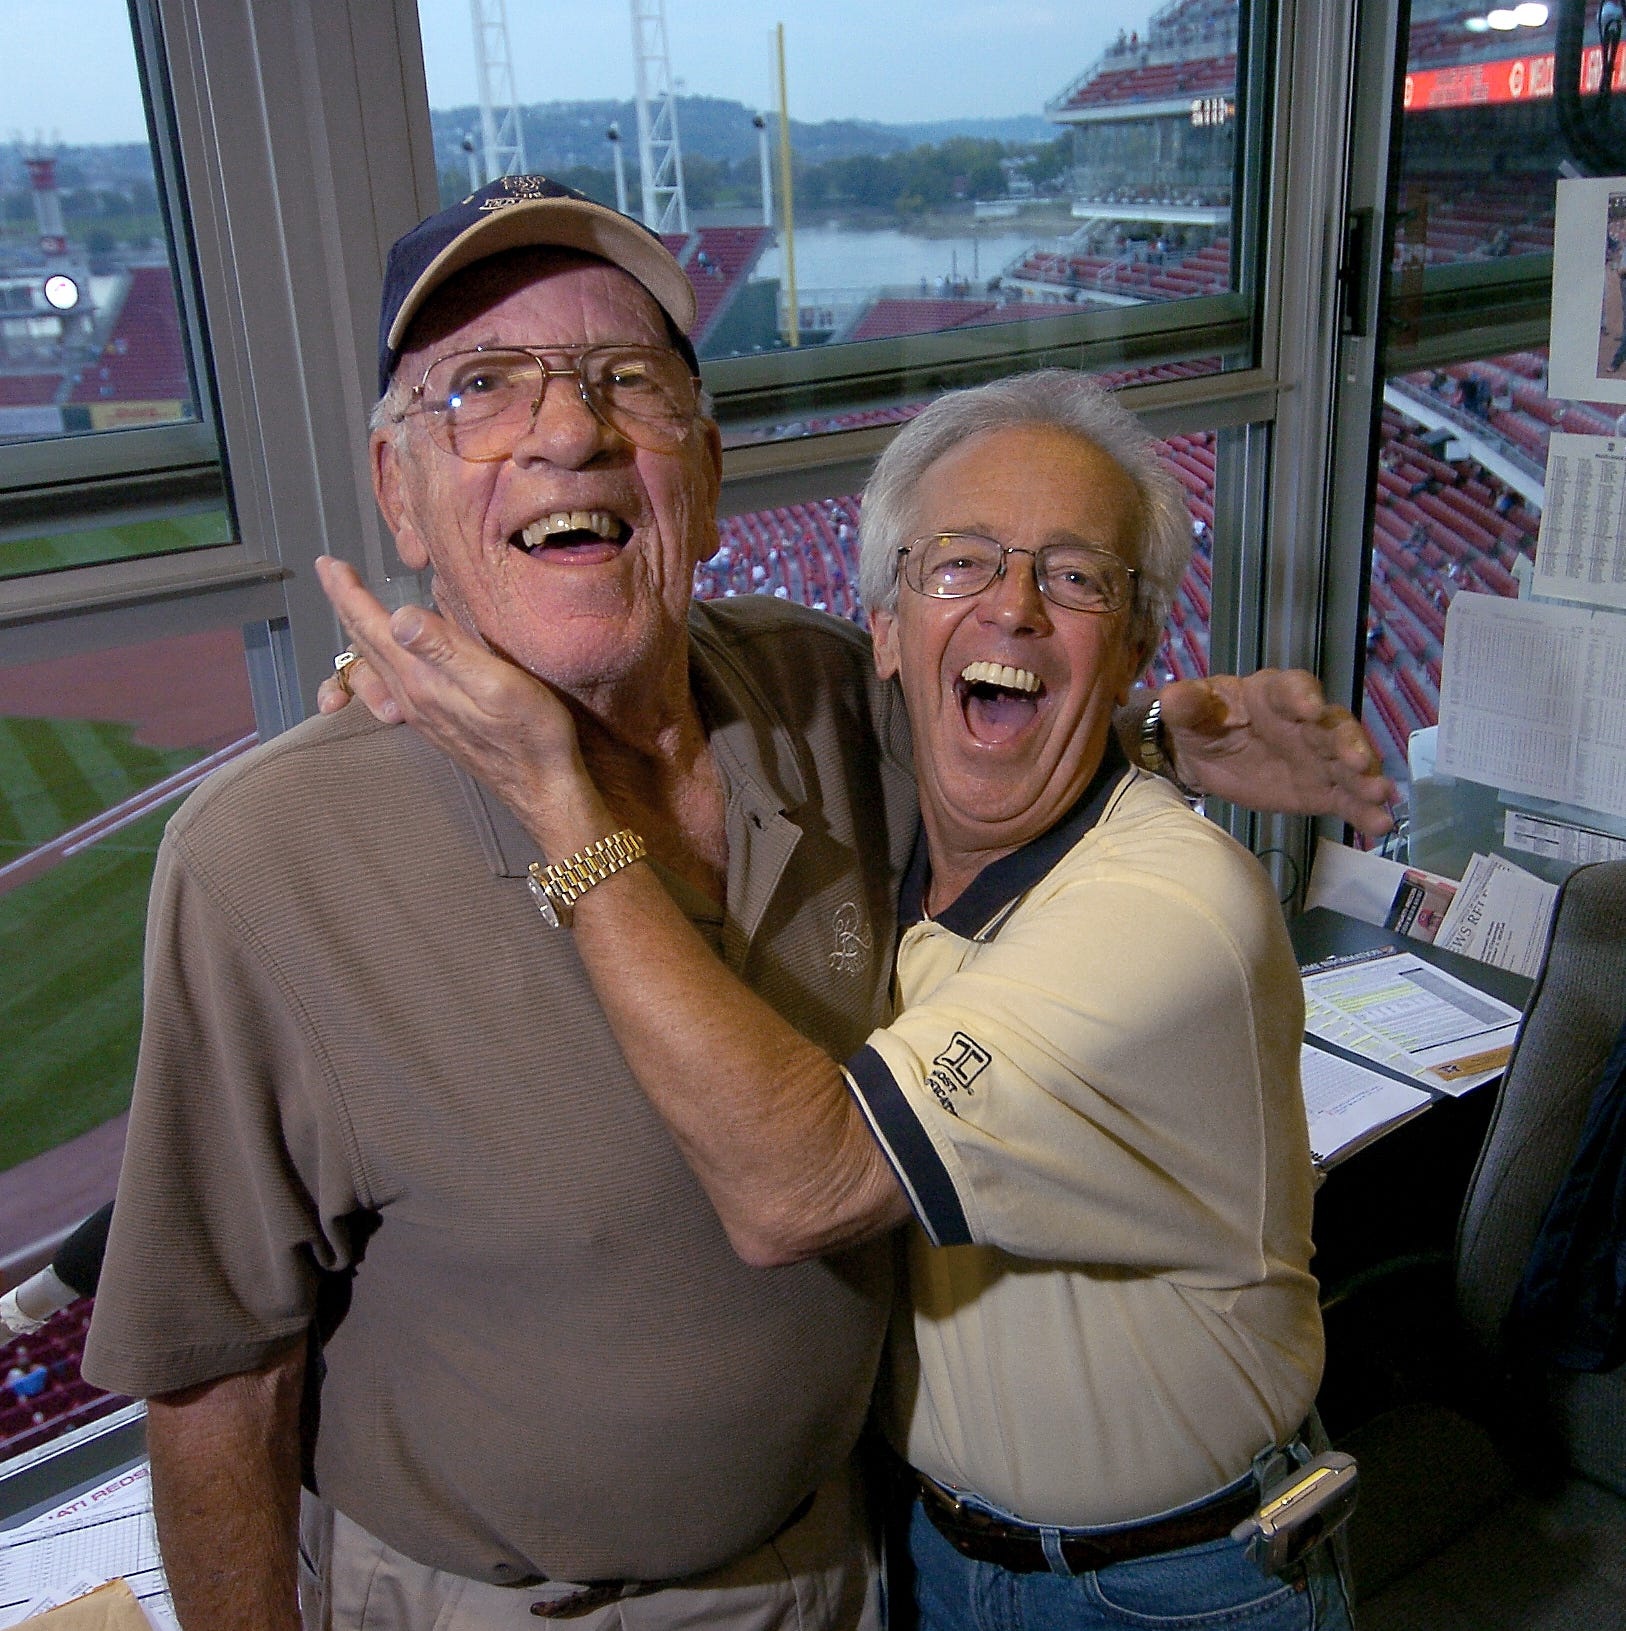 Relive some of Marty Brennaman's greatest calls in the Cincinnati Reds radio booth